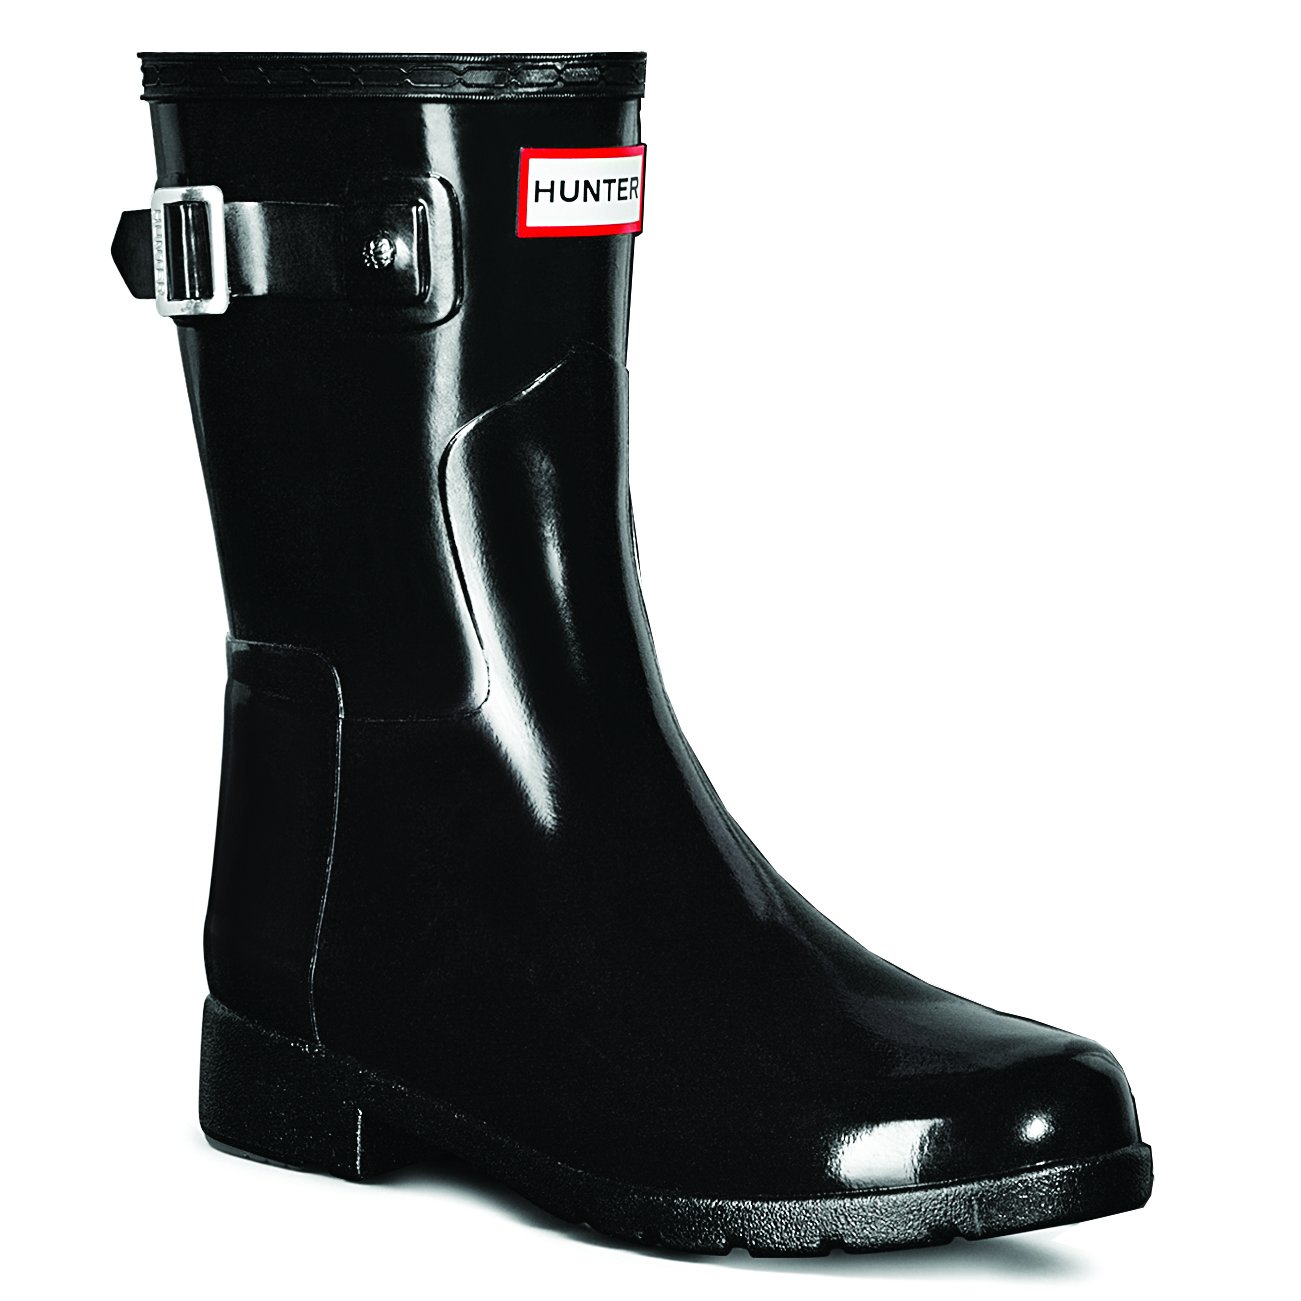 Hunter Womens Original Refined Short Gloss Snow Rain Boots - Black - 7